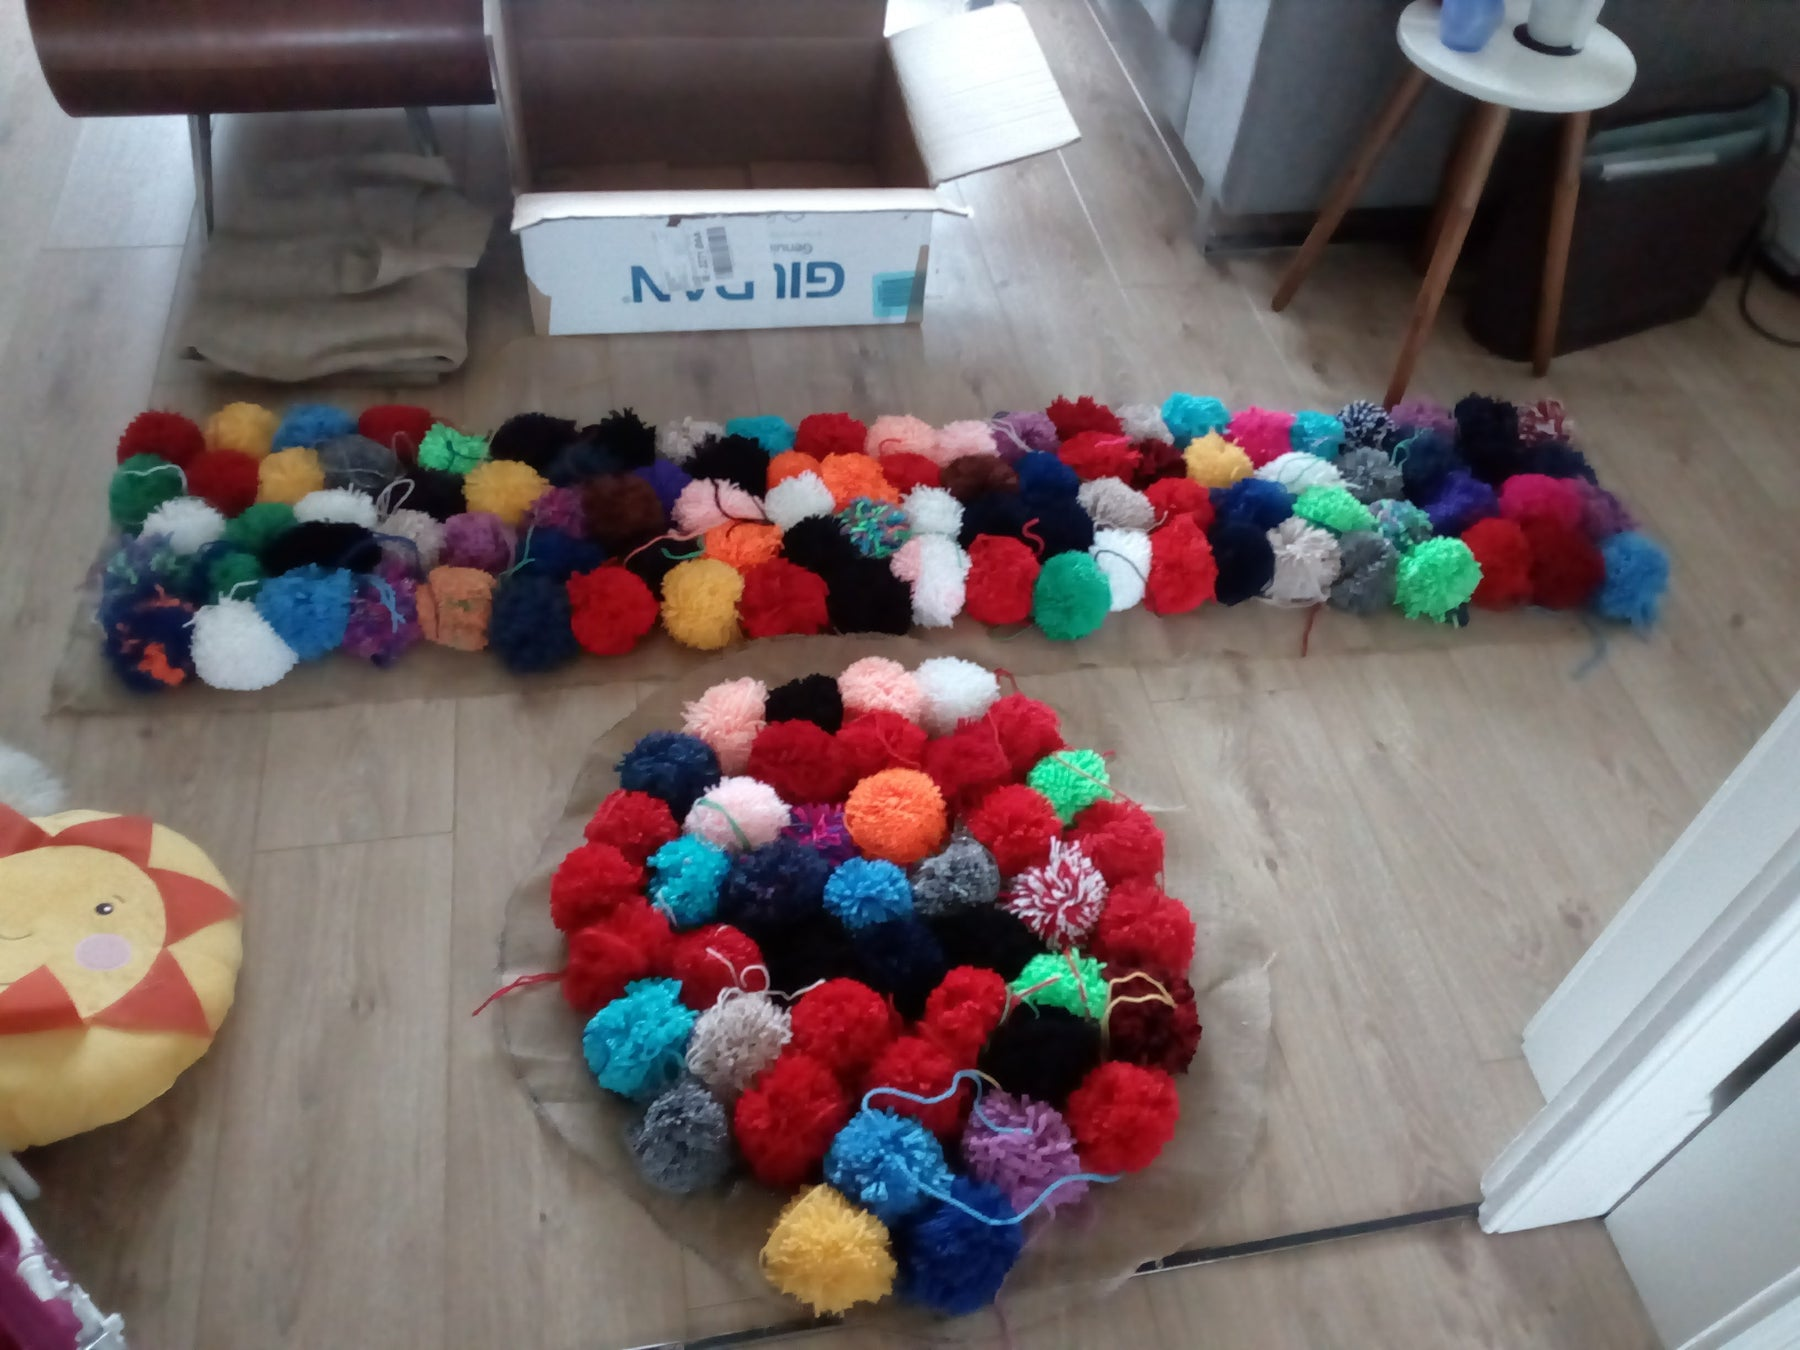 Step-bystep guide for the pom pom chair project